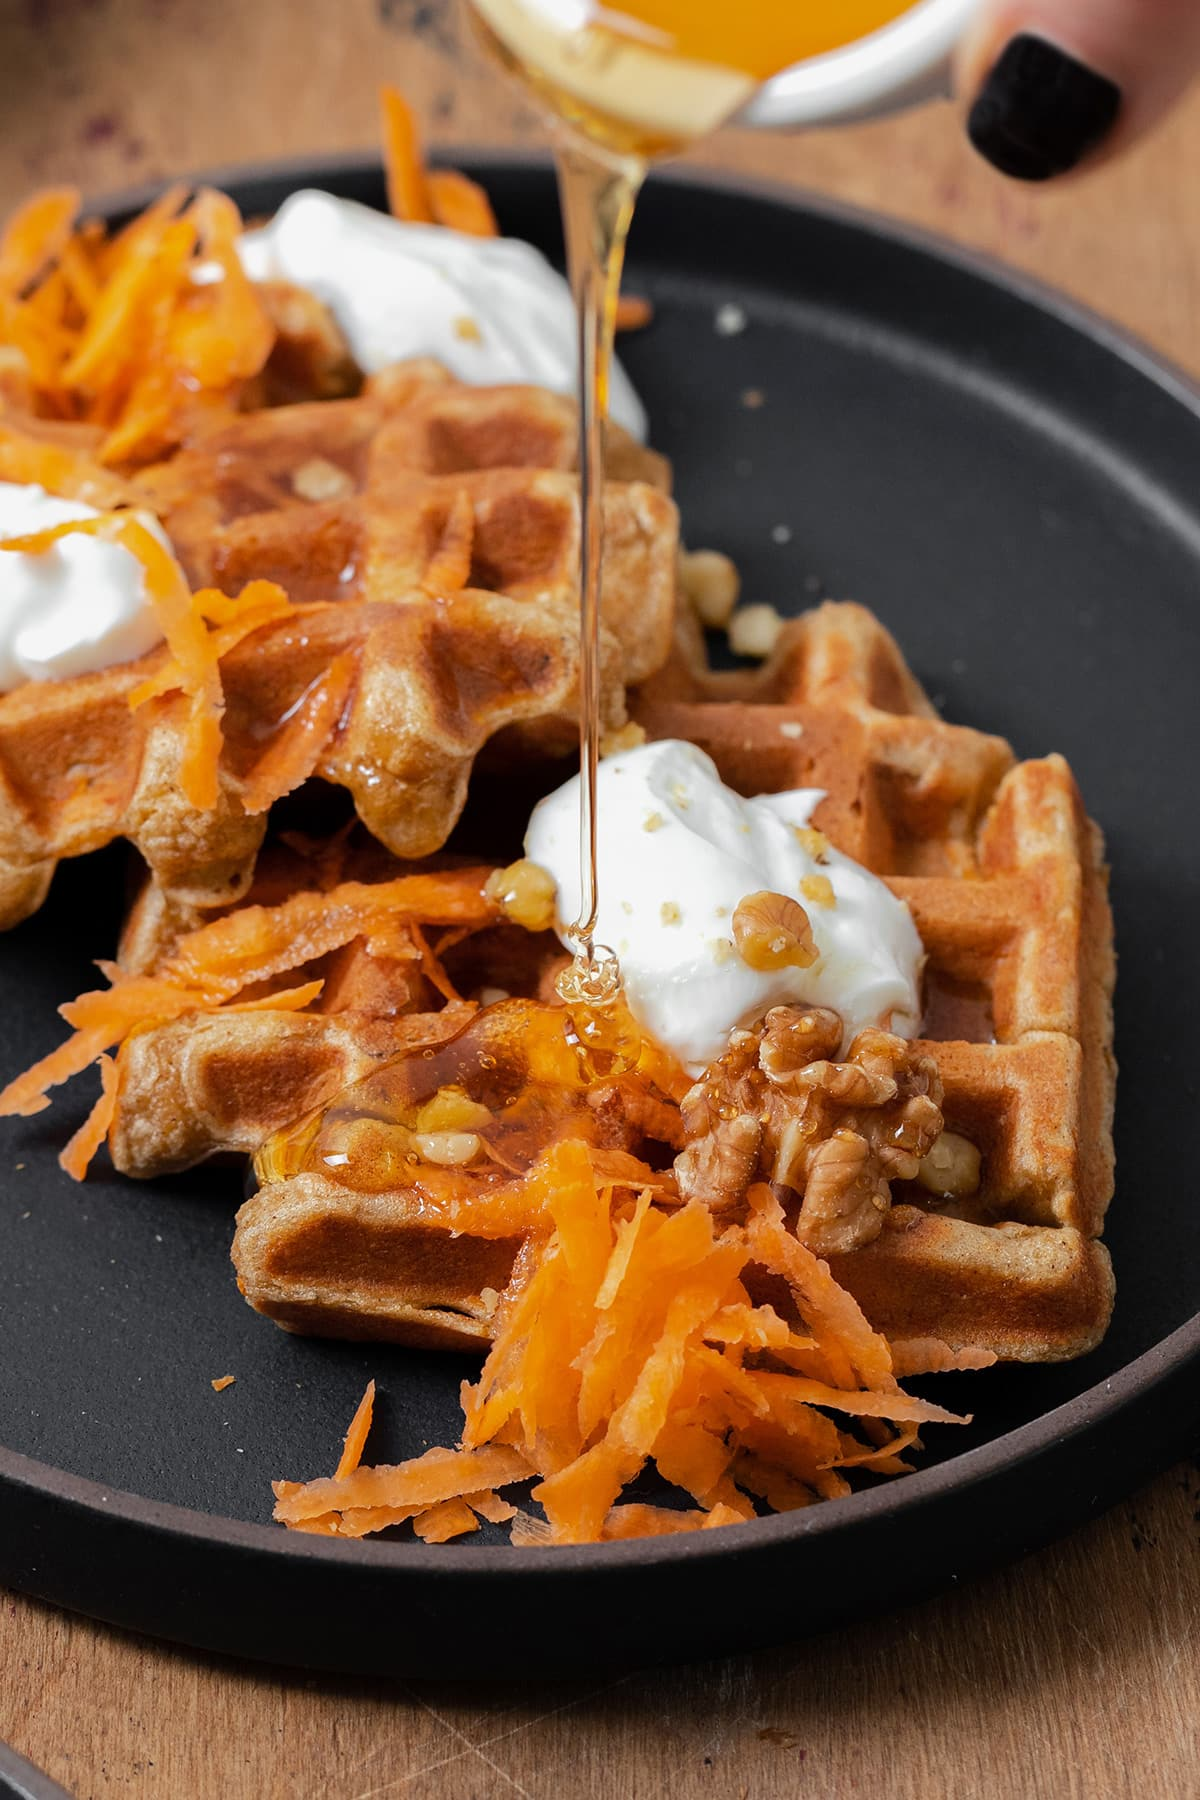 A photo of a hand holding a small bowl of honey and pouring it over two carrot cake waffles on a black plate topped with grated carrots, dollops of greek yogurt, and walnuts.